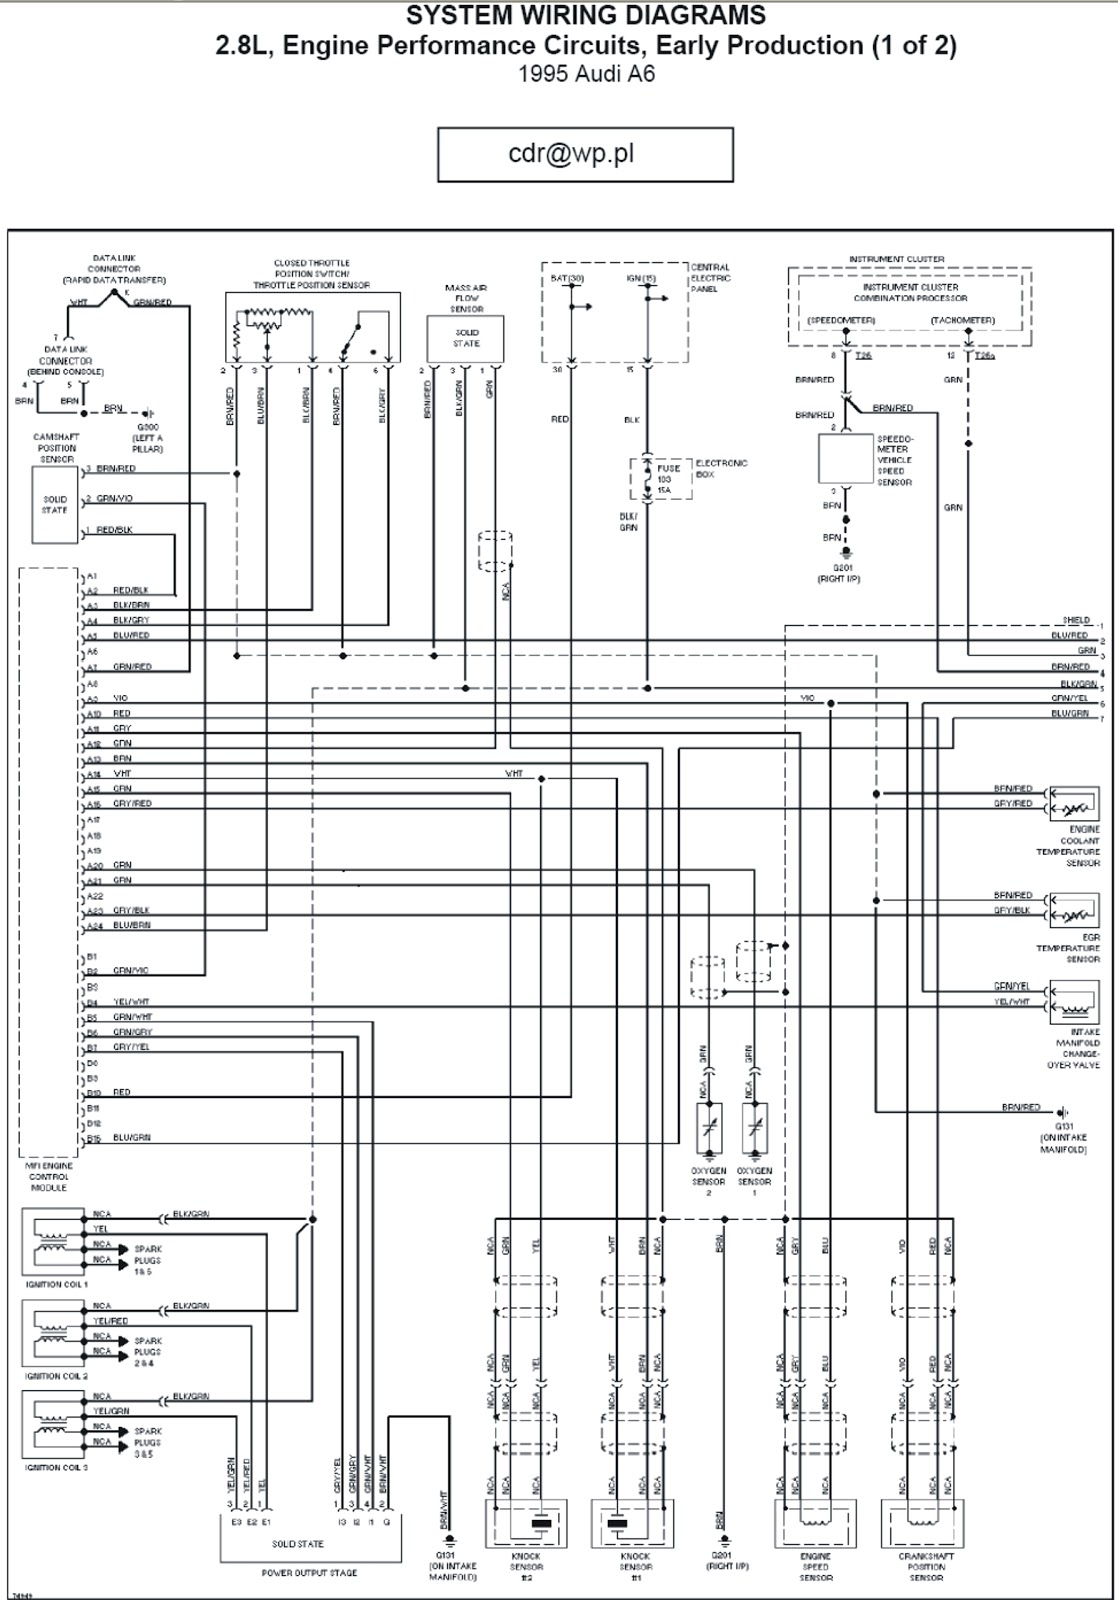 1999 Audi A6 Wiring Diagram